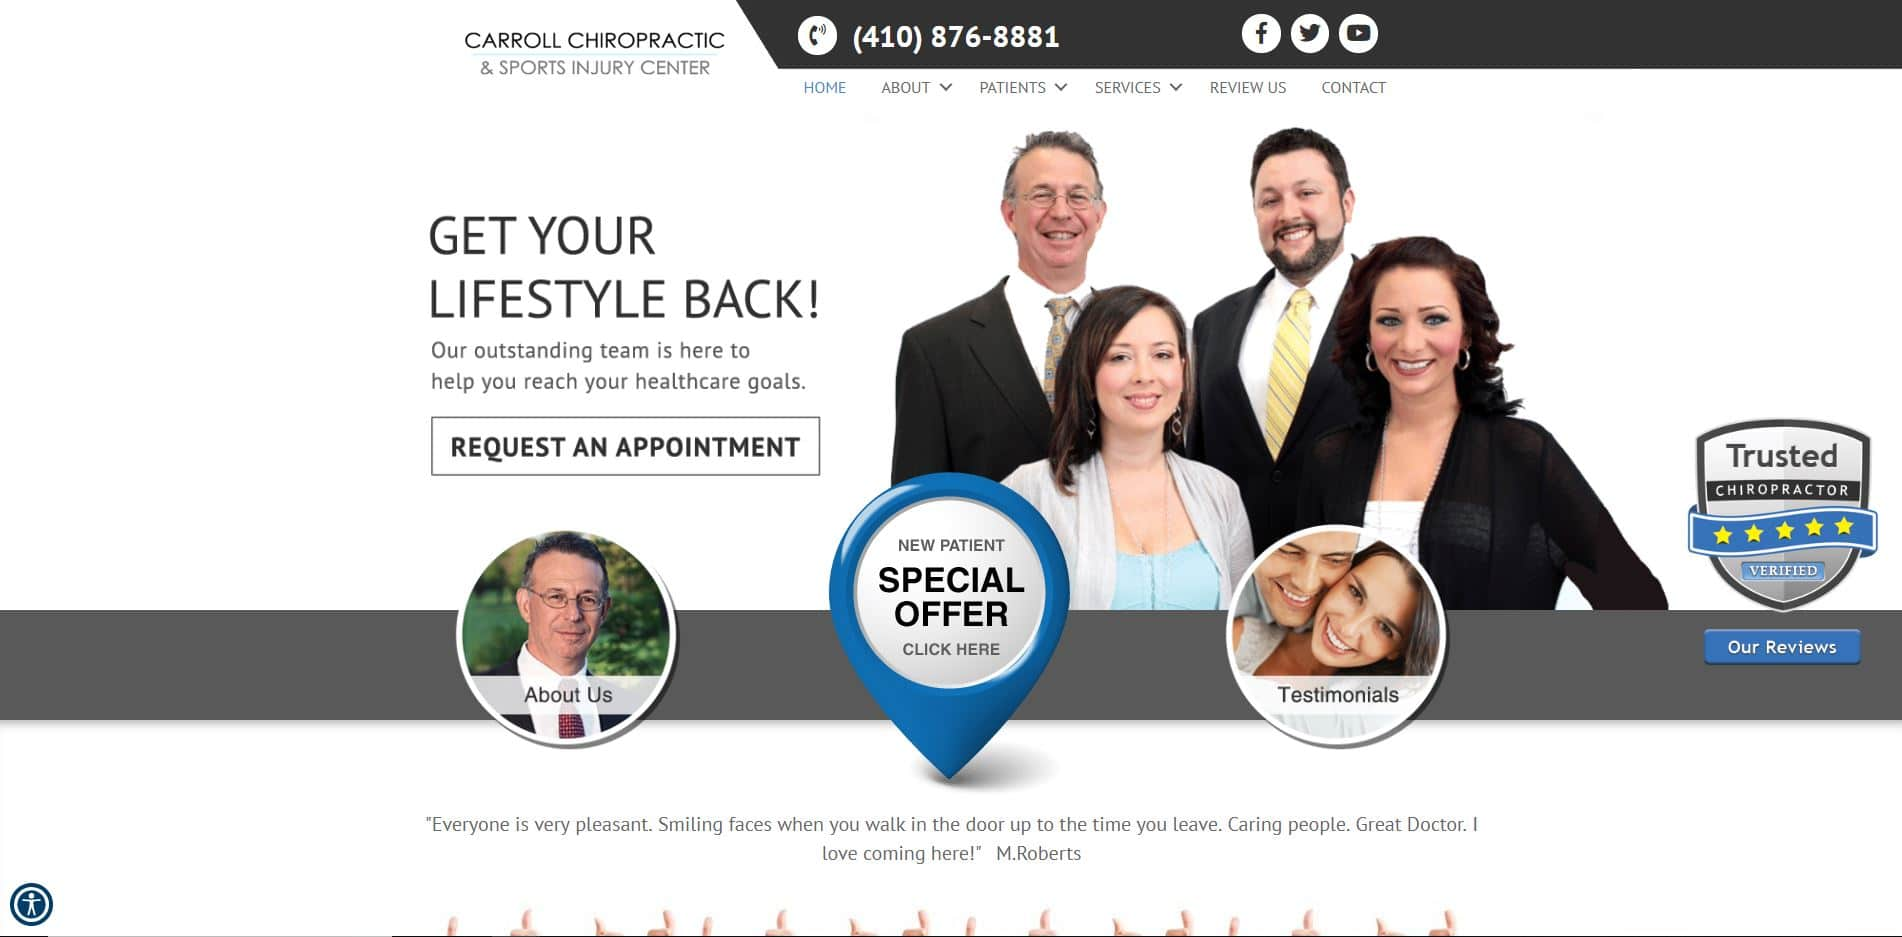 Chiropractor in Westminster